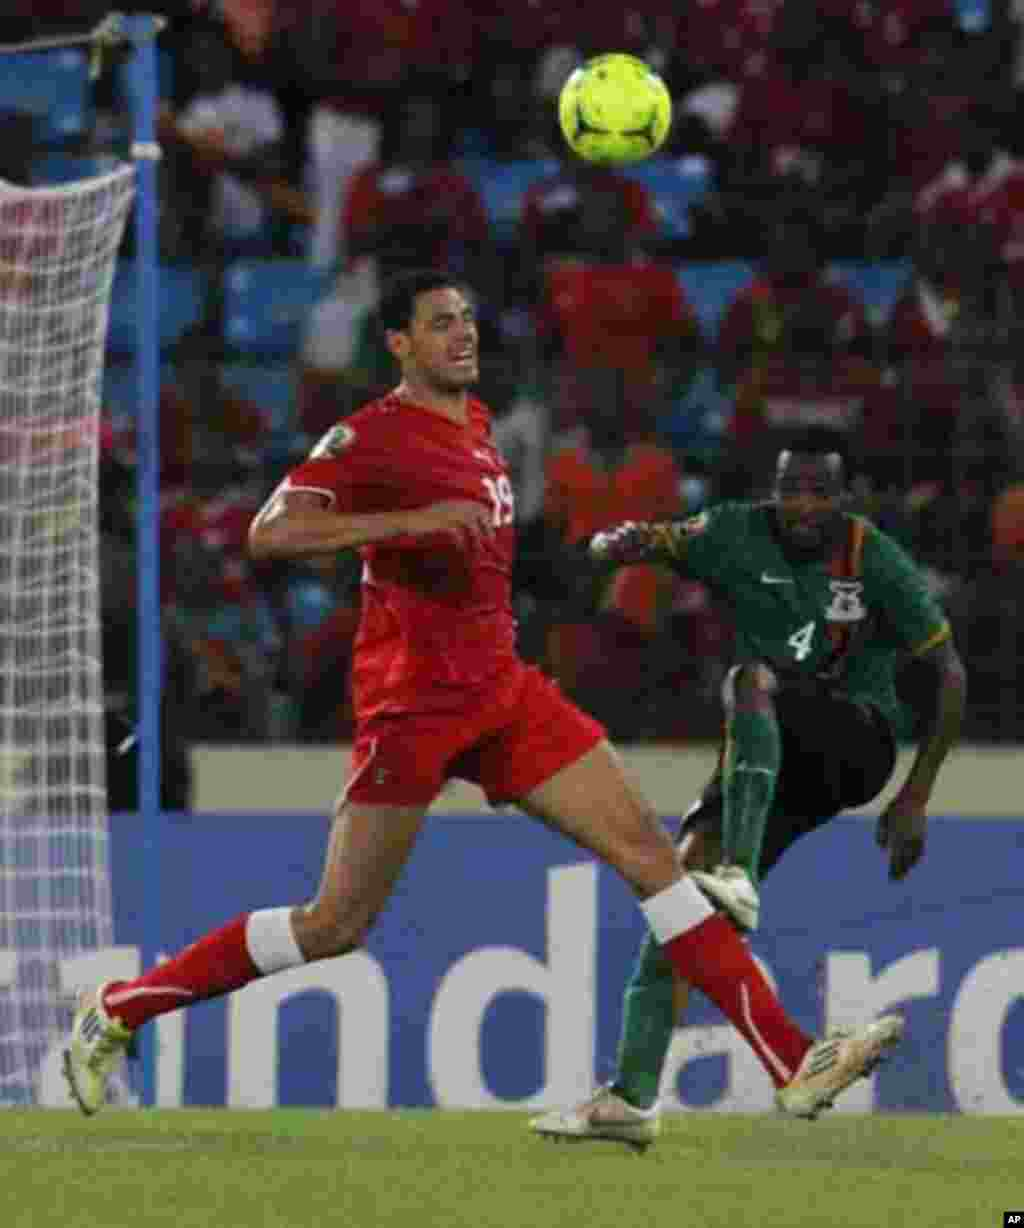 Ivan Fabiani (L) of Equatorial Guinea fights for the ball with Joseph Musonda of Zambia during their African Nations Cup soccer match in Malabo January 29, 2012.